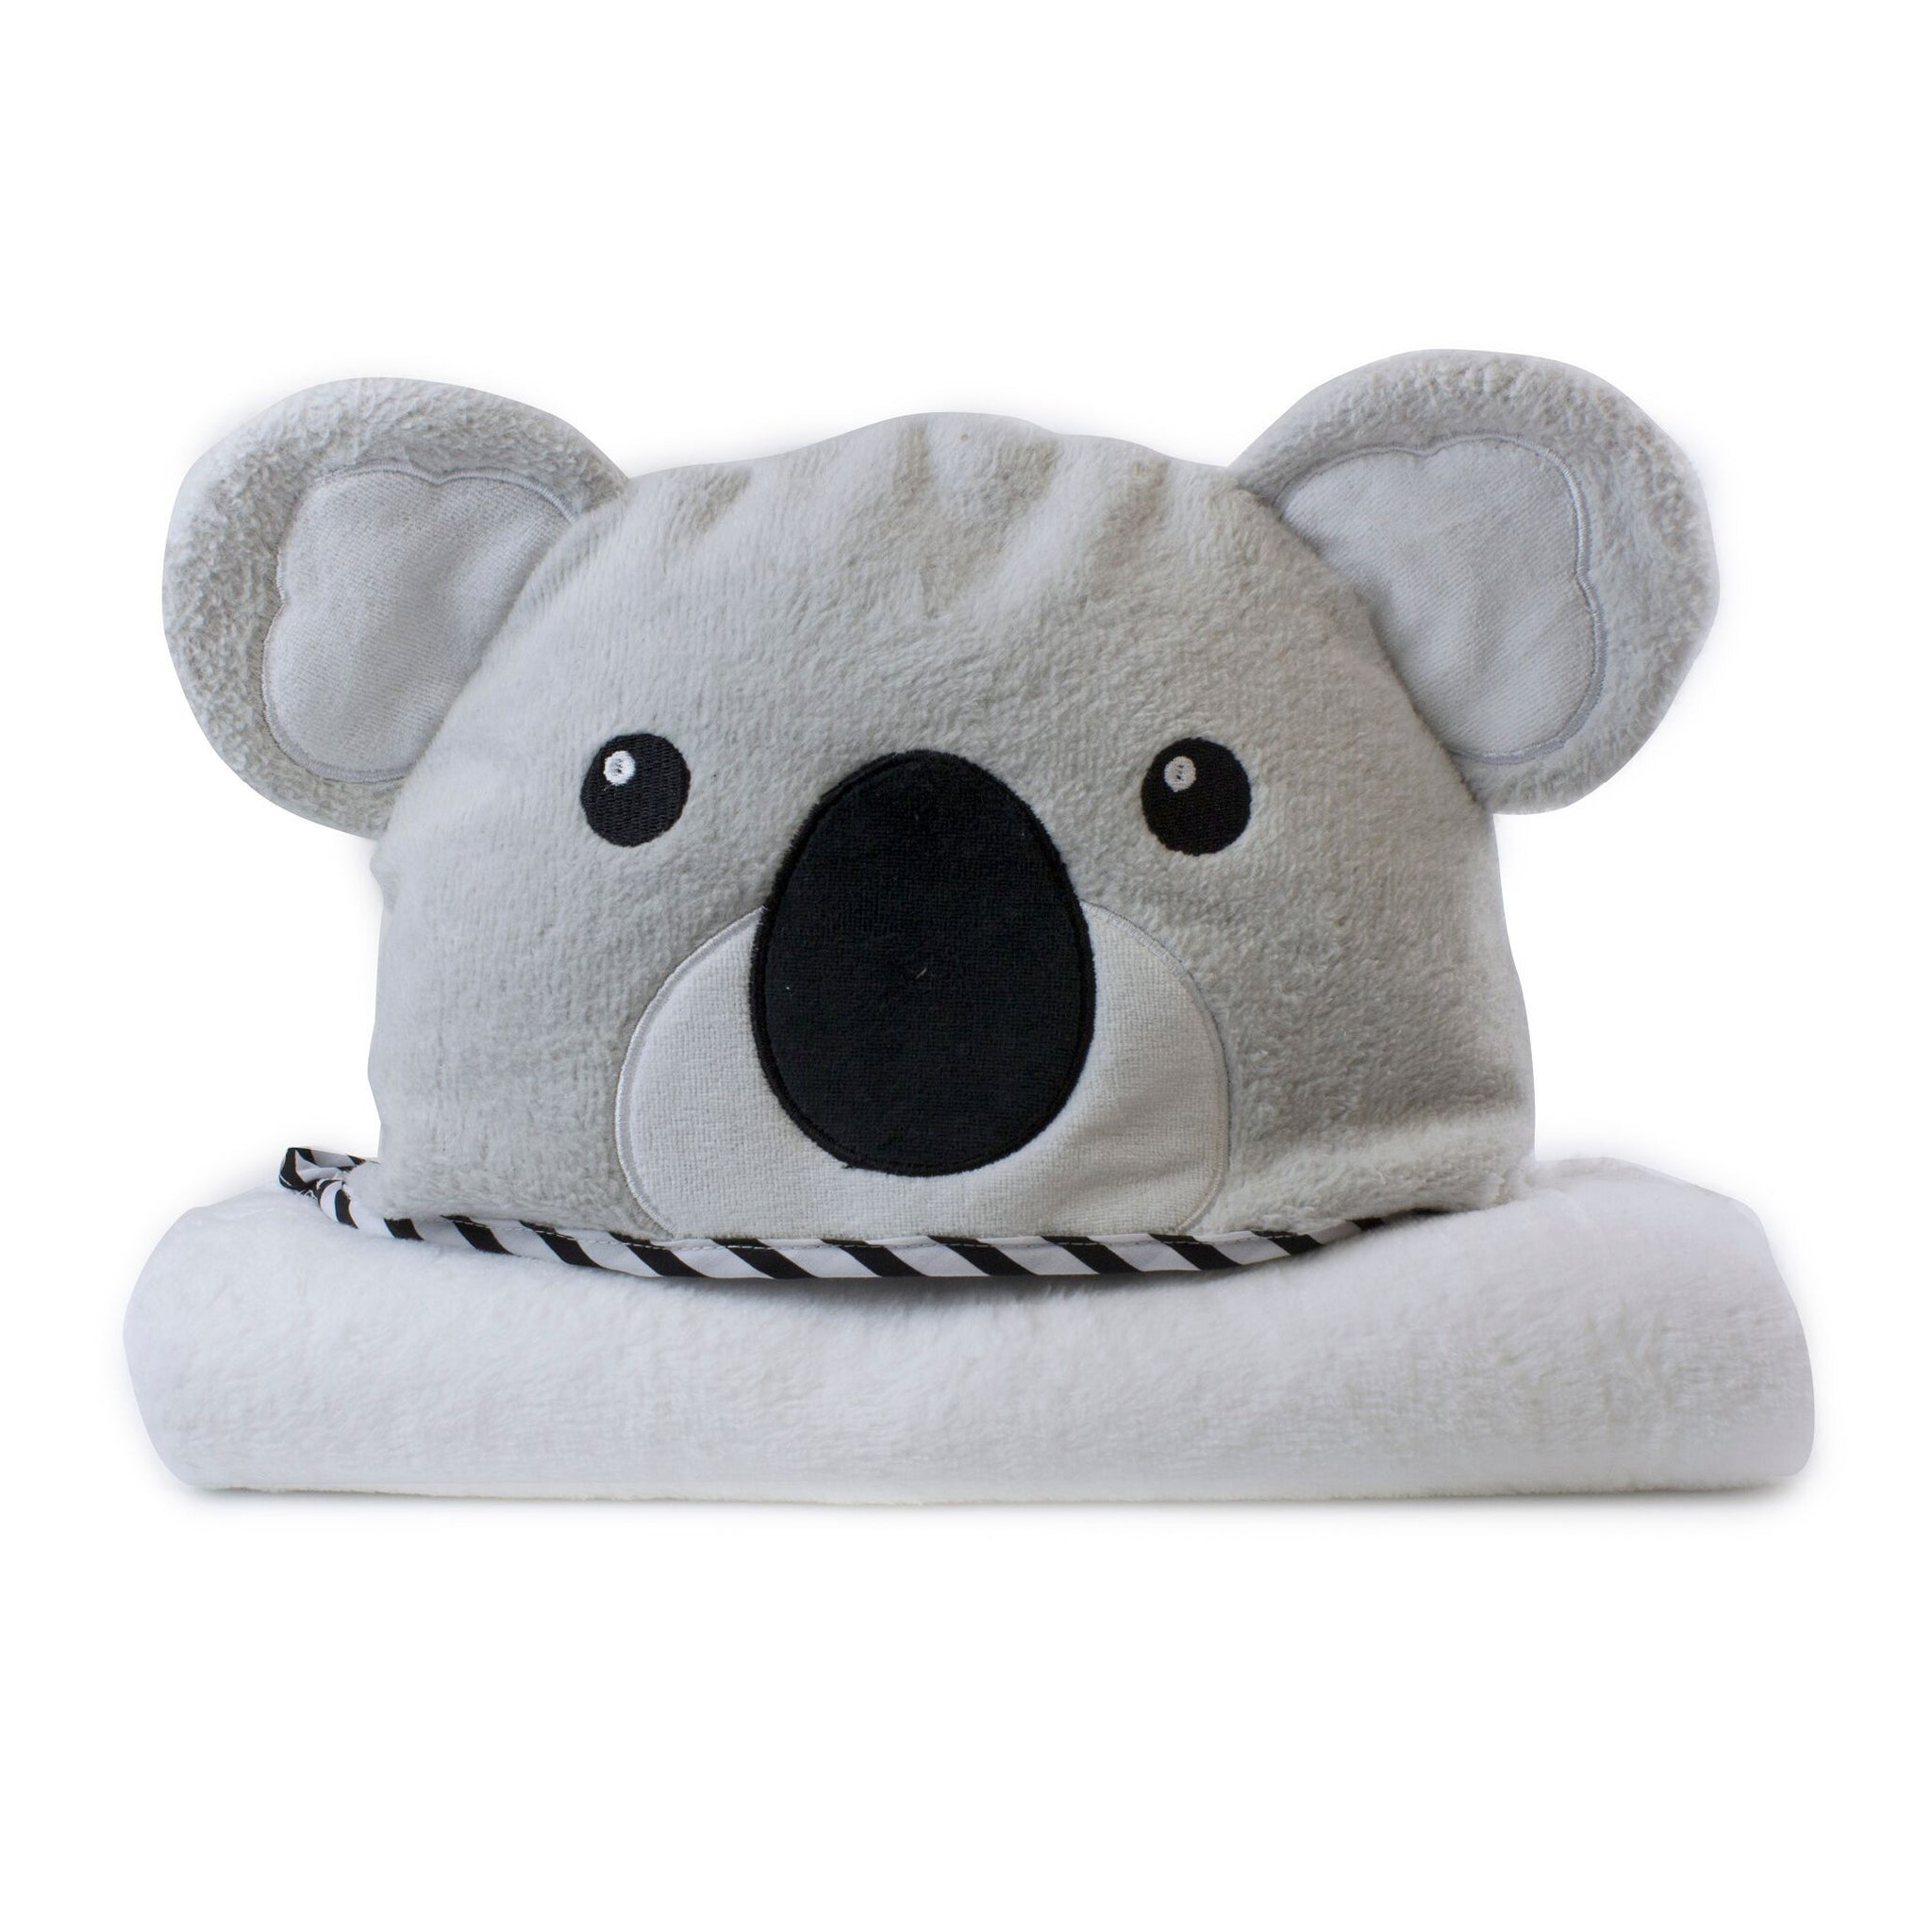 Aussie Animals 'Koala' Novelty Hooded Bath Towel Safari Totz